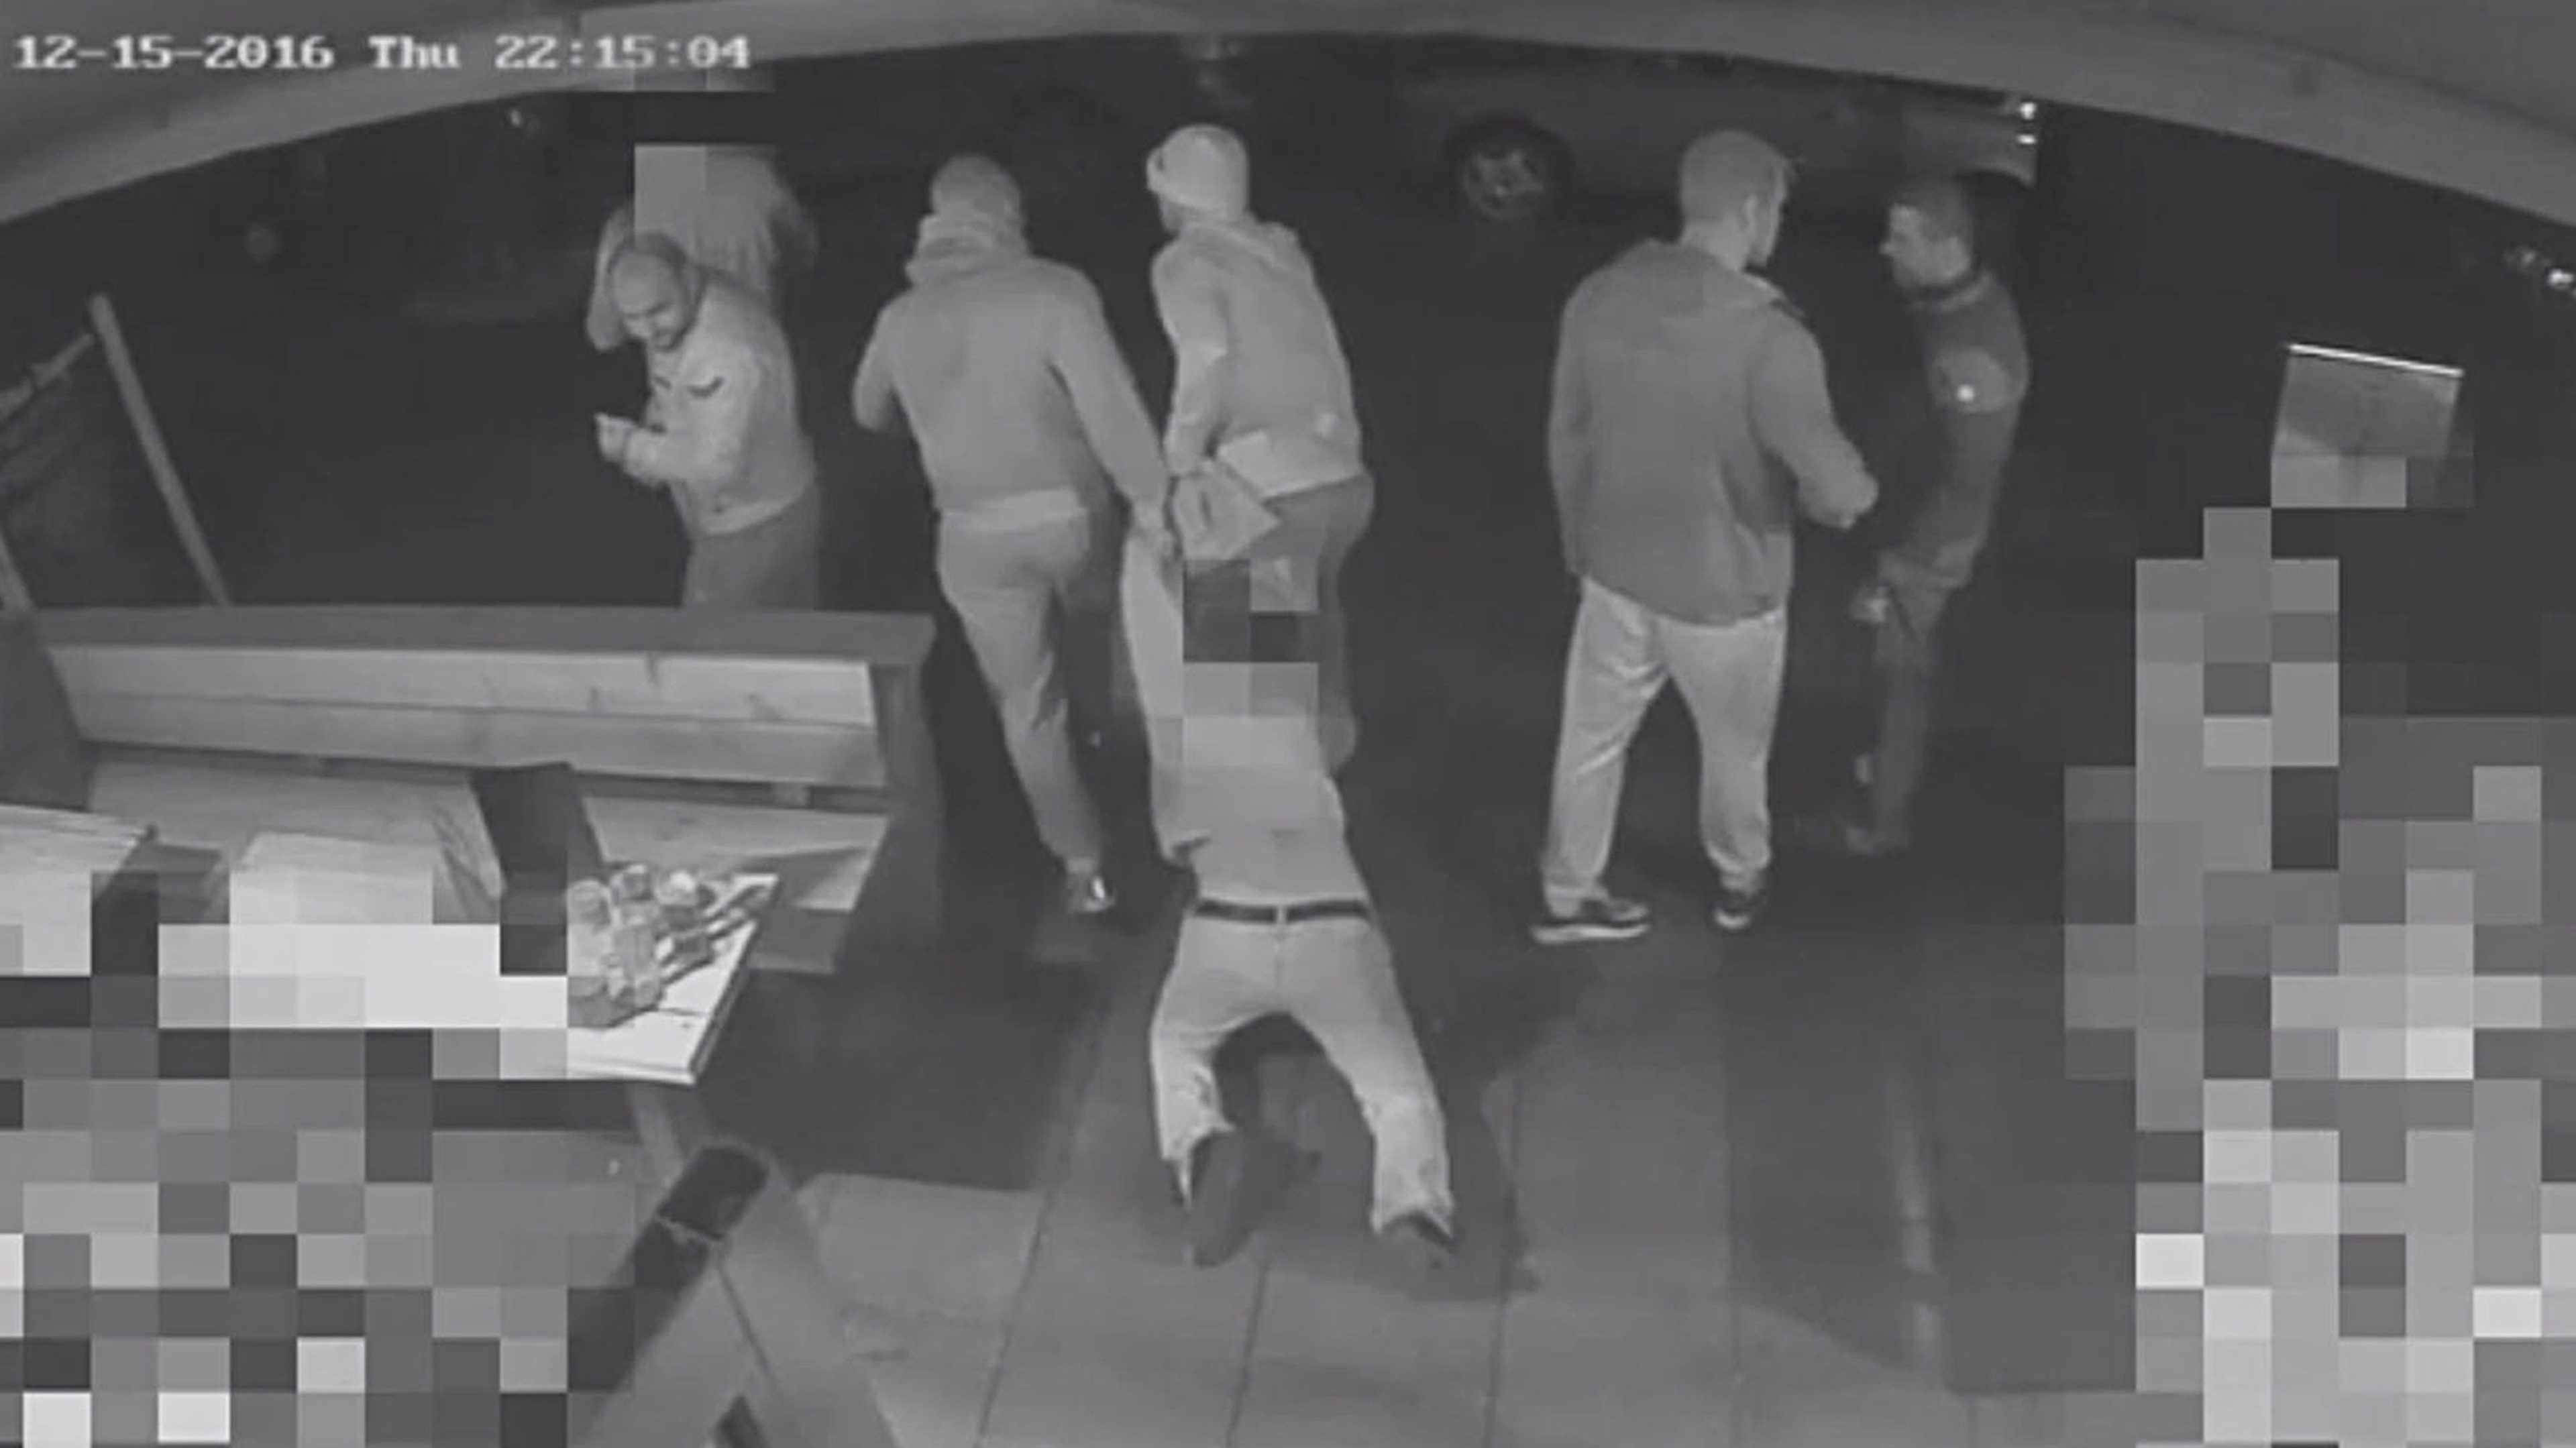 Police have released a 45-second clip as part of an appeal for information